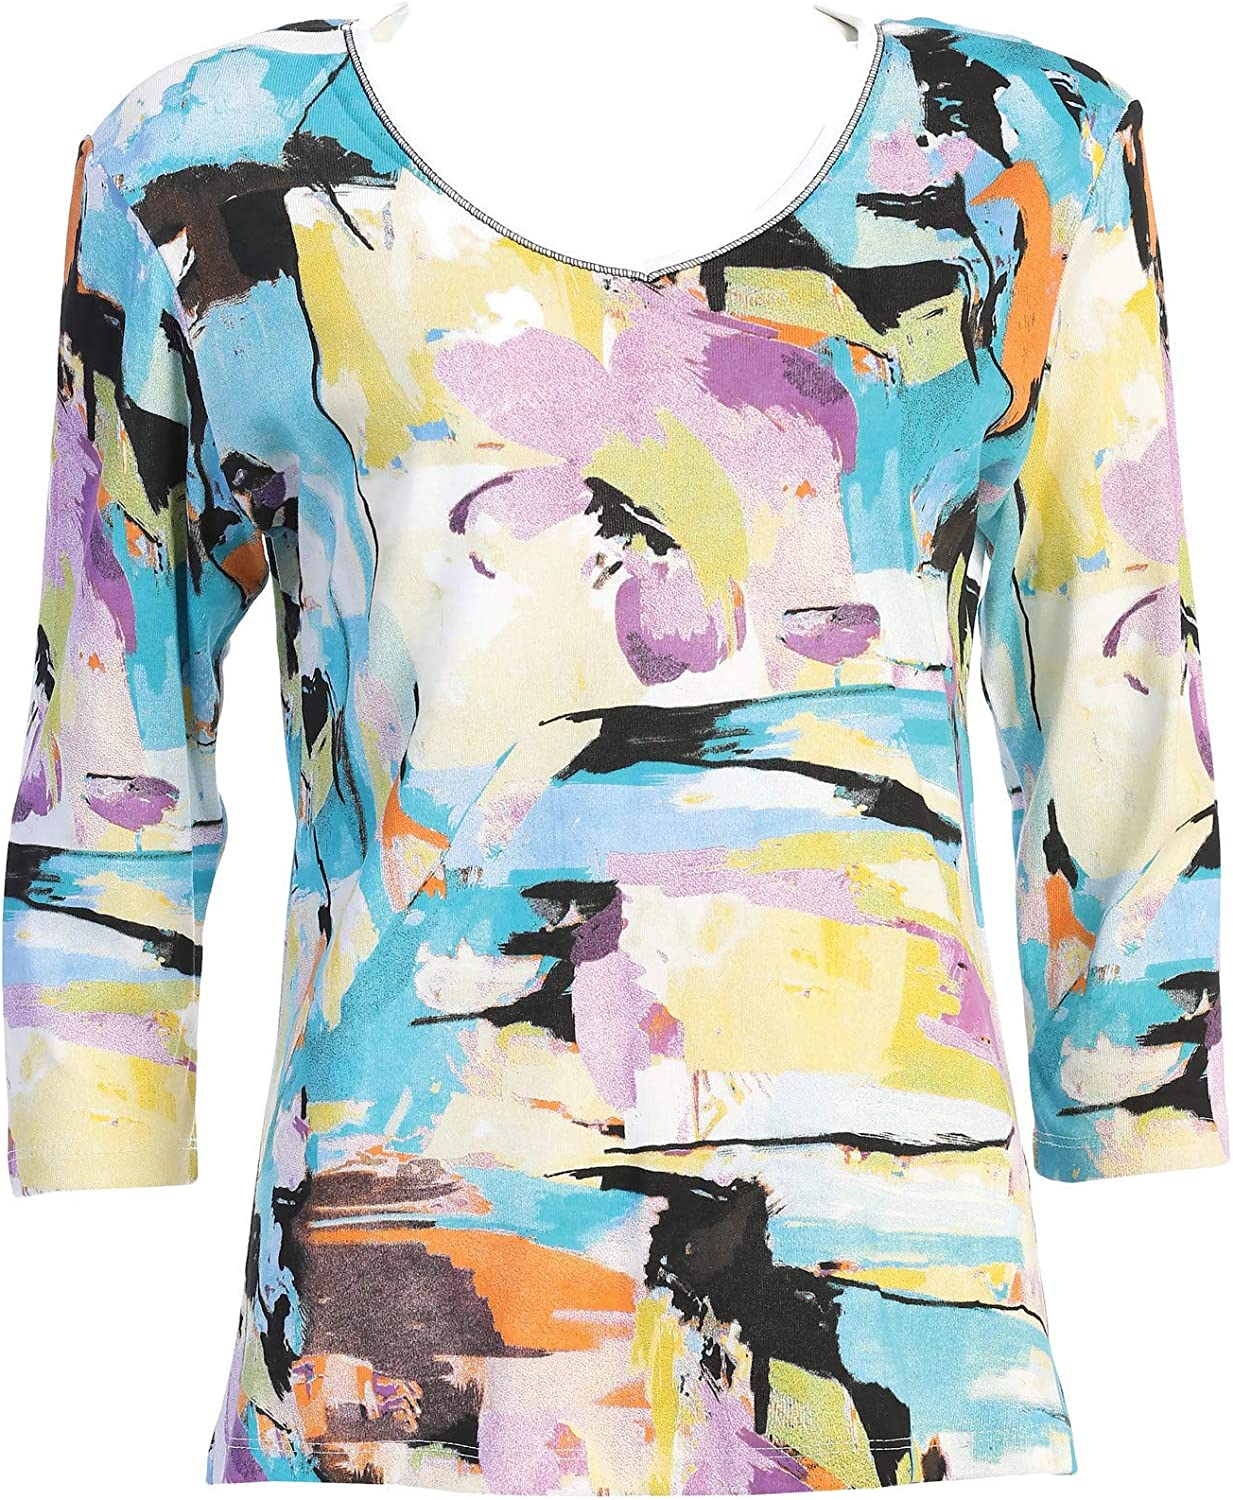 Jess Jane Women's List price Masterpiece Tee Cotton Top Shirt Clearance SALE! Limited time!